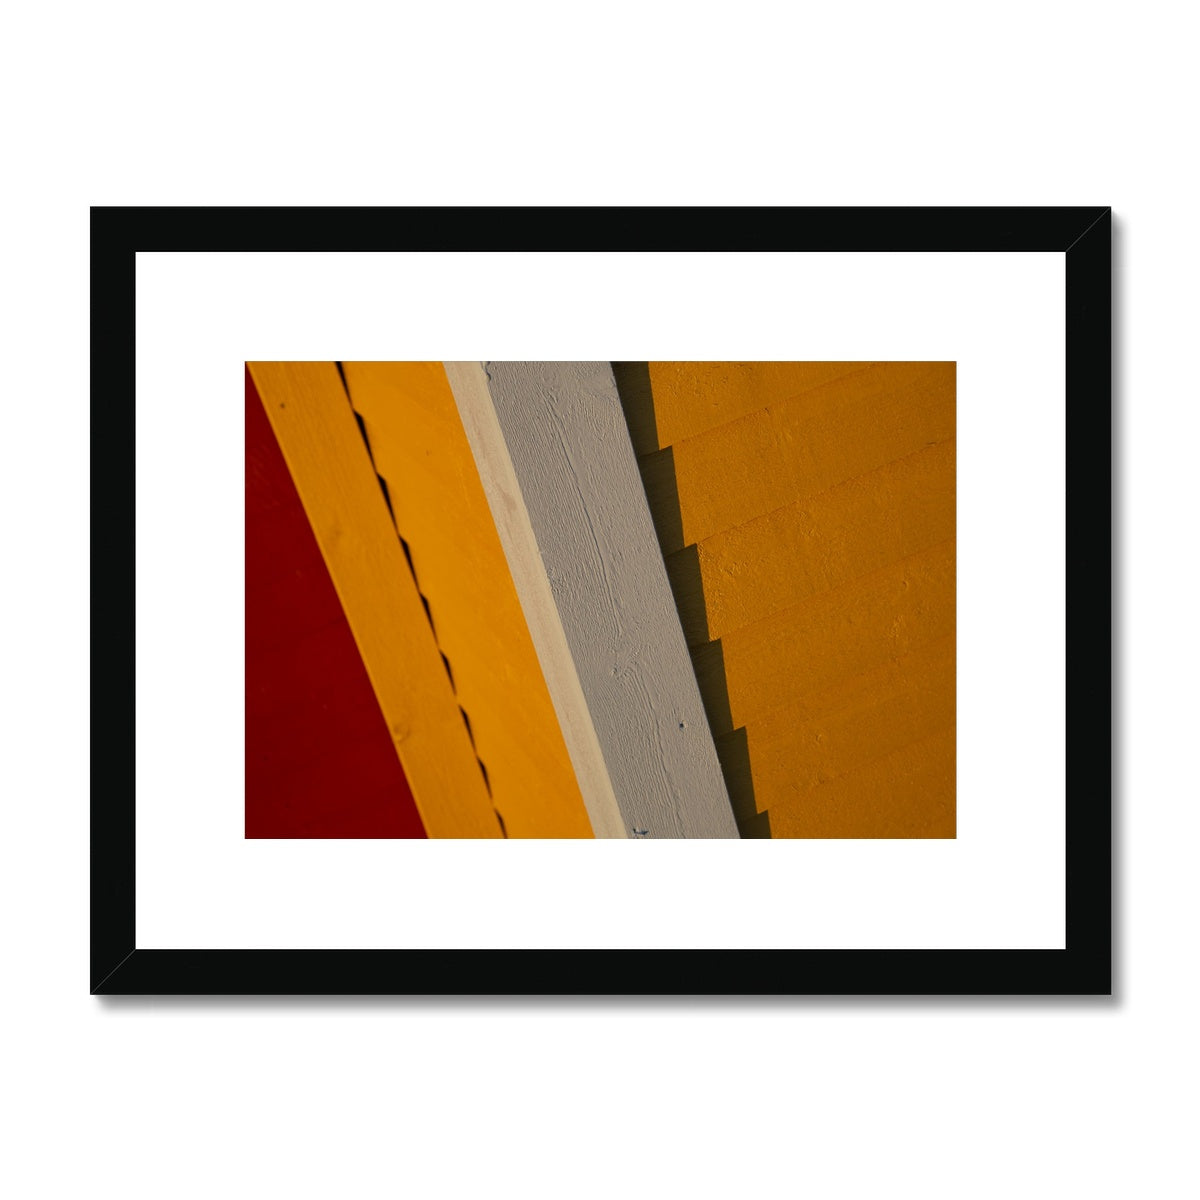 Swedish Beach Huts_7 Framed & Mounted Print